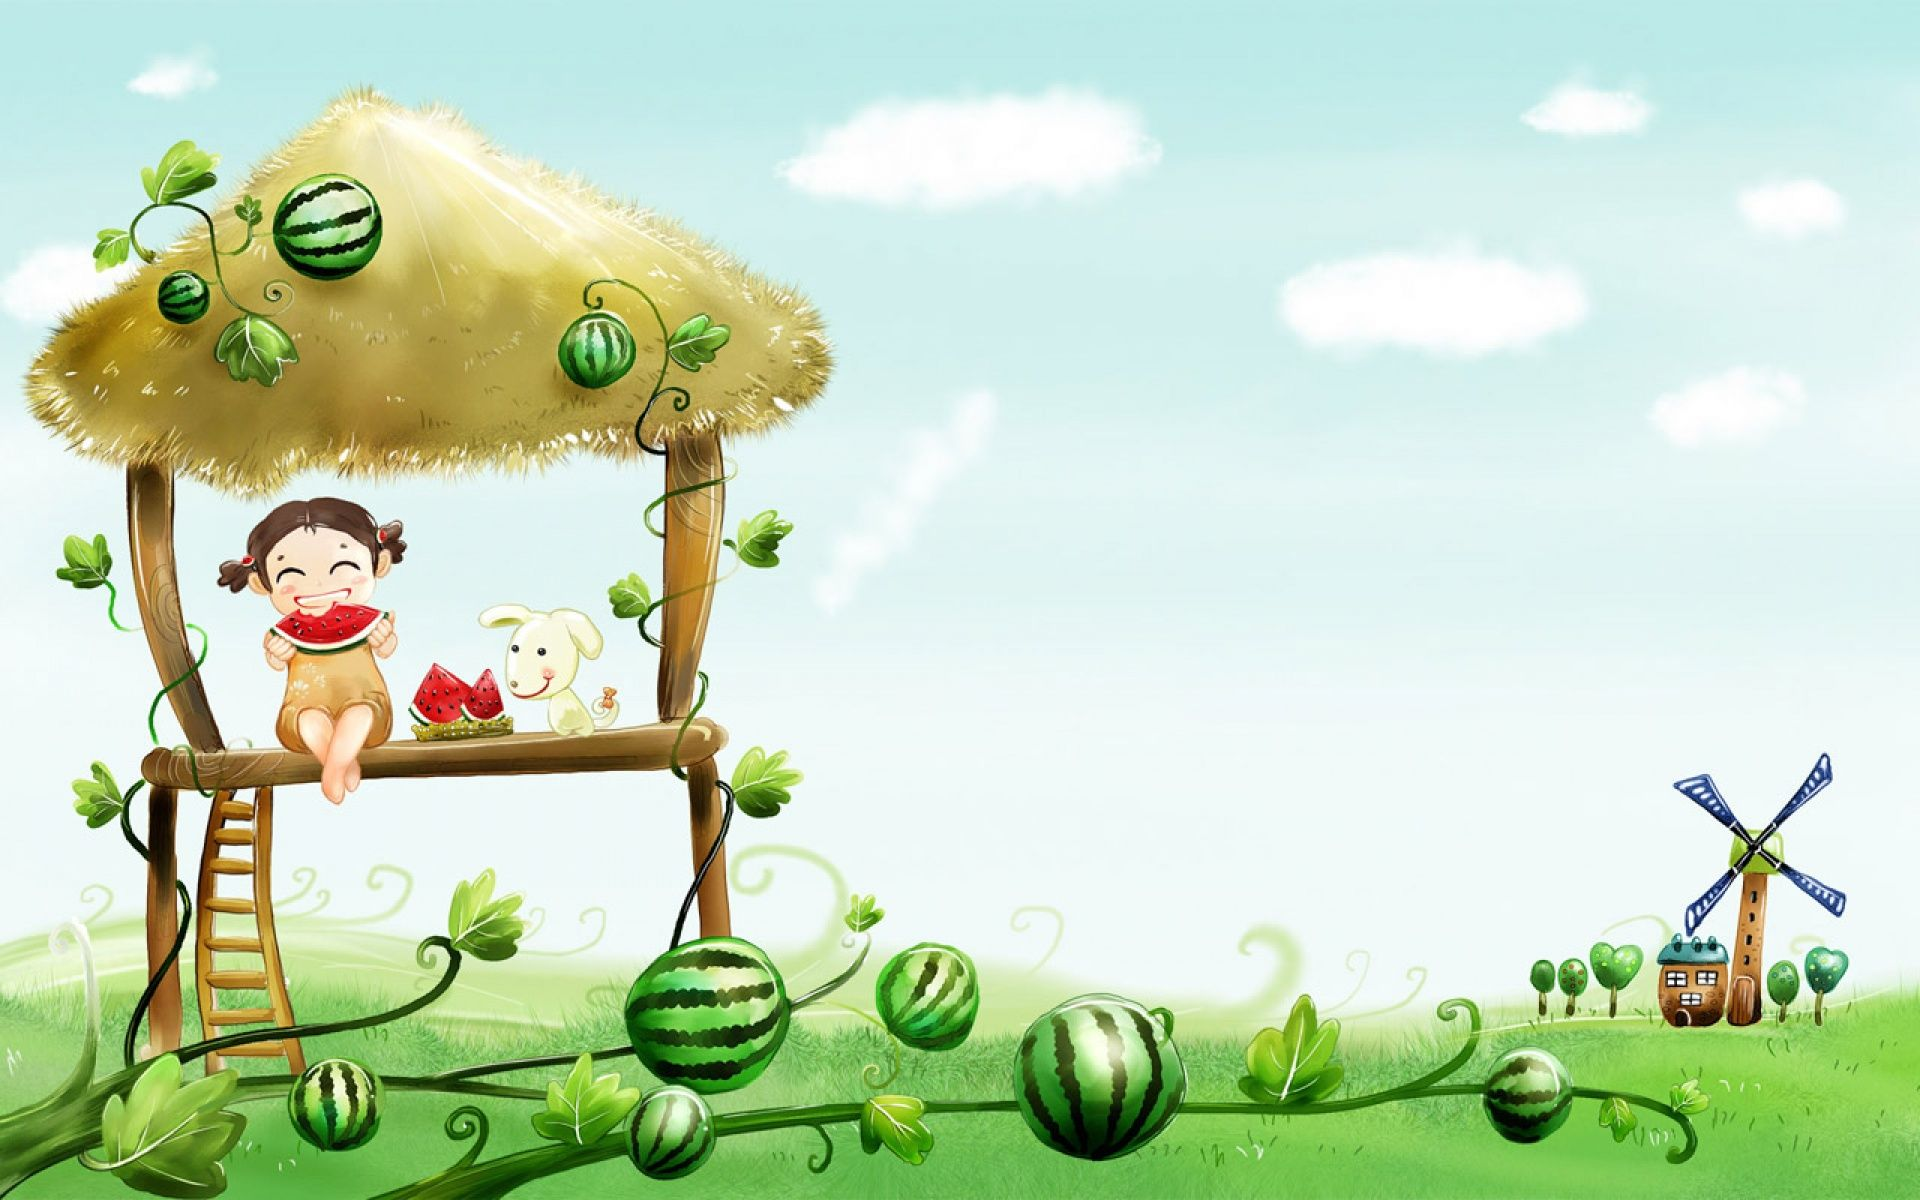 Hd wallpaper cartoon - Best Ideas About Cute Cartoon Wallpapers On Pinterest Cute